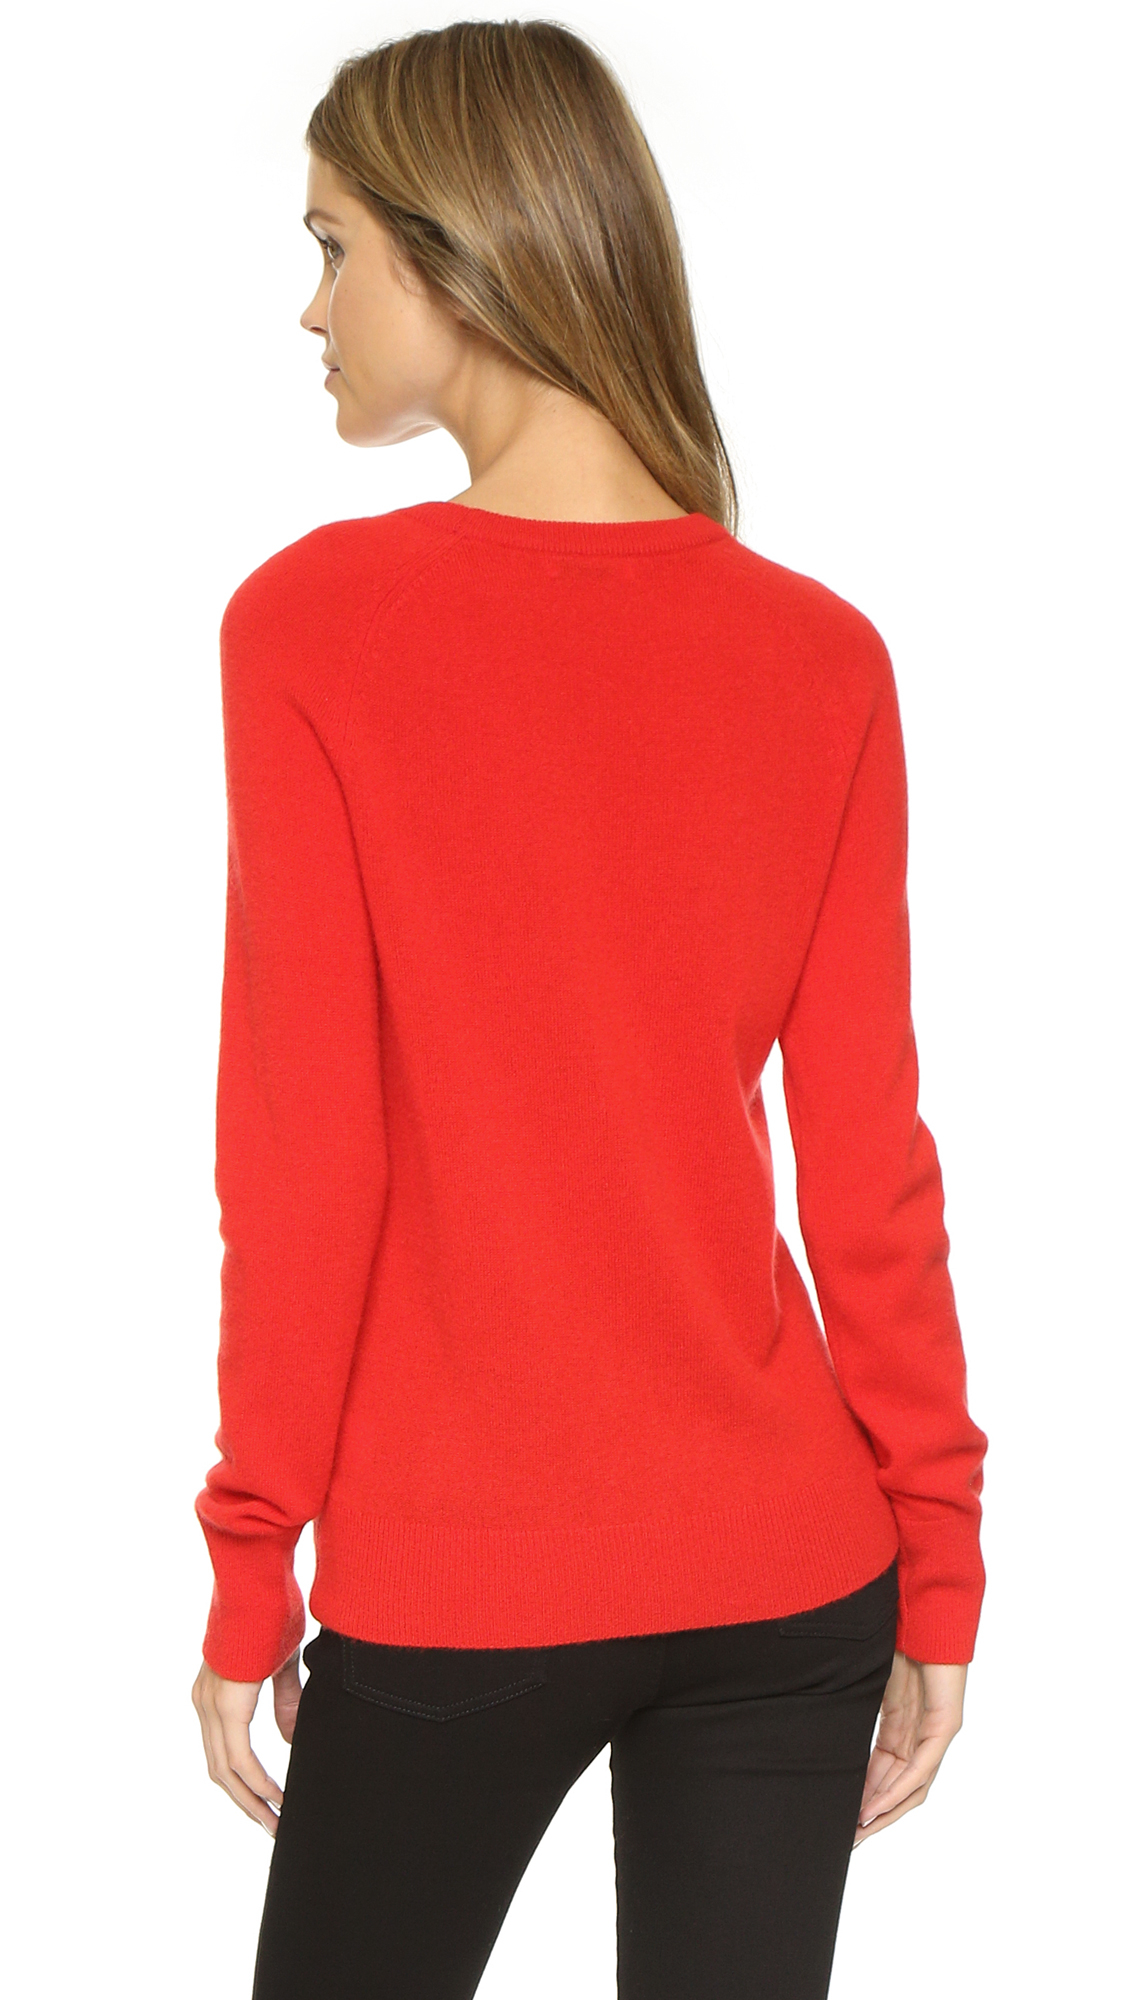 Equipment Sloane Crew Neck Sweater in Red | Lyst